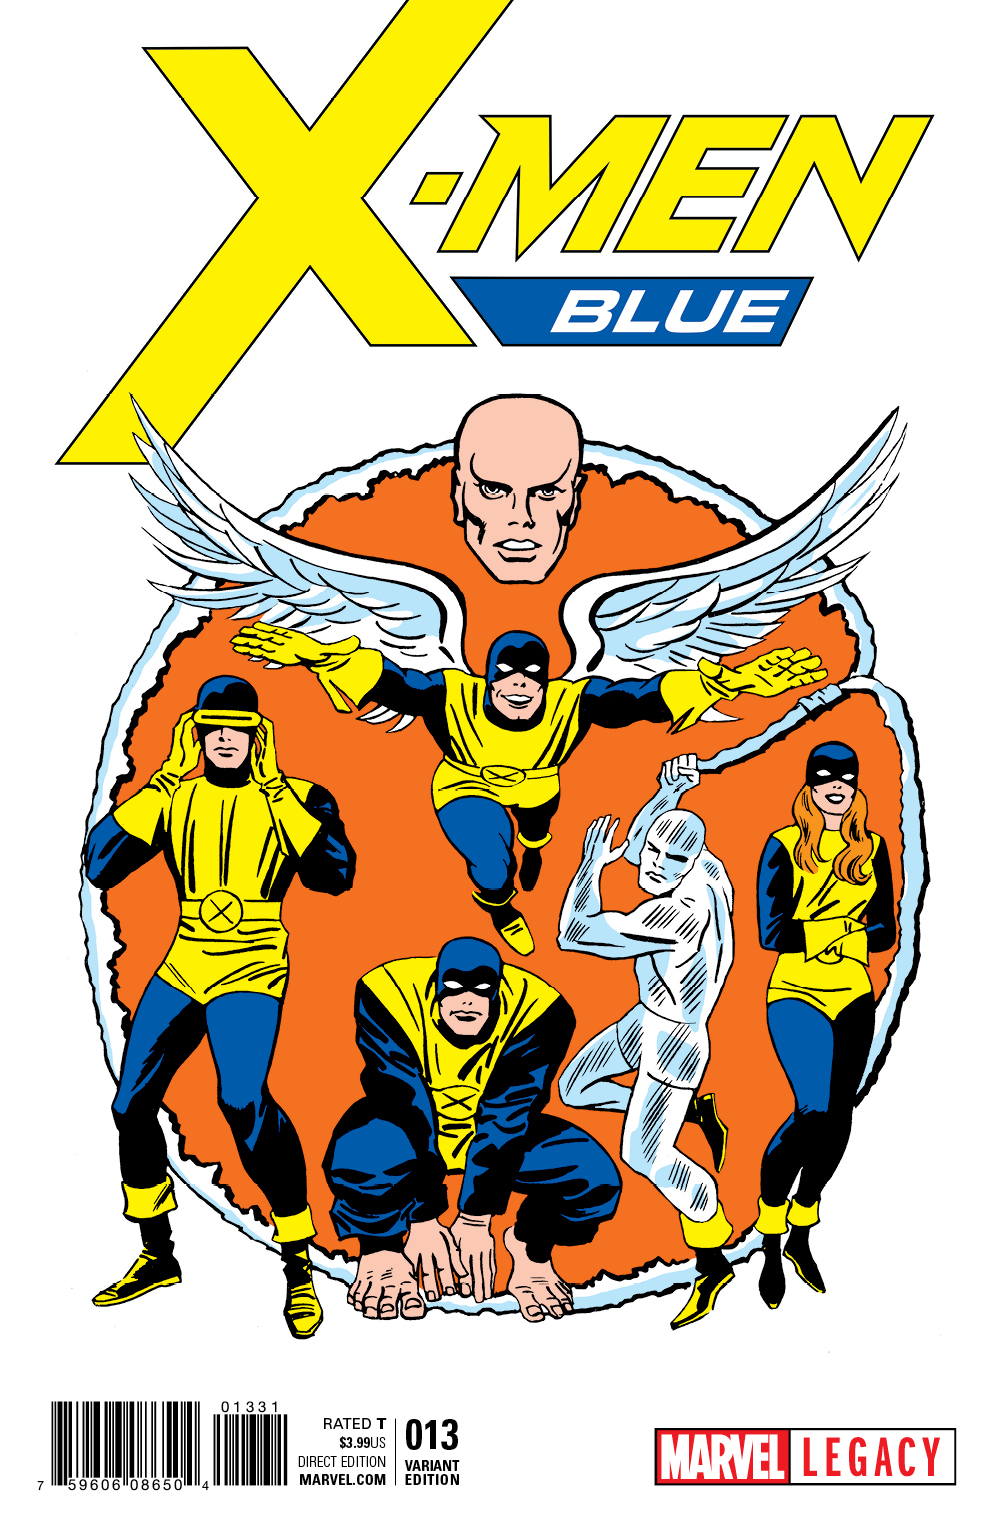 A major retcon changes everything in X-Men Blue #19